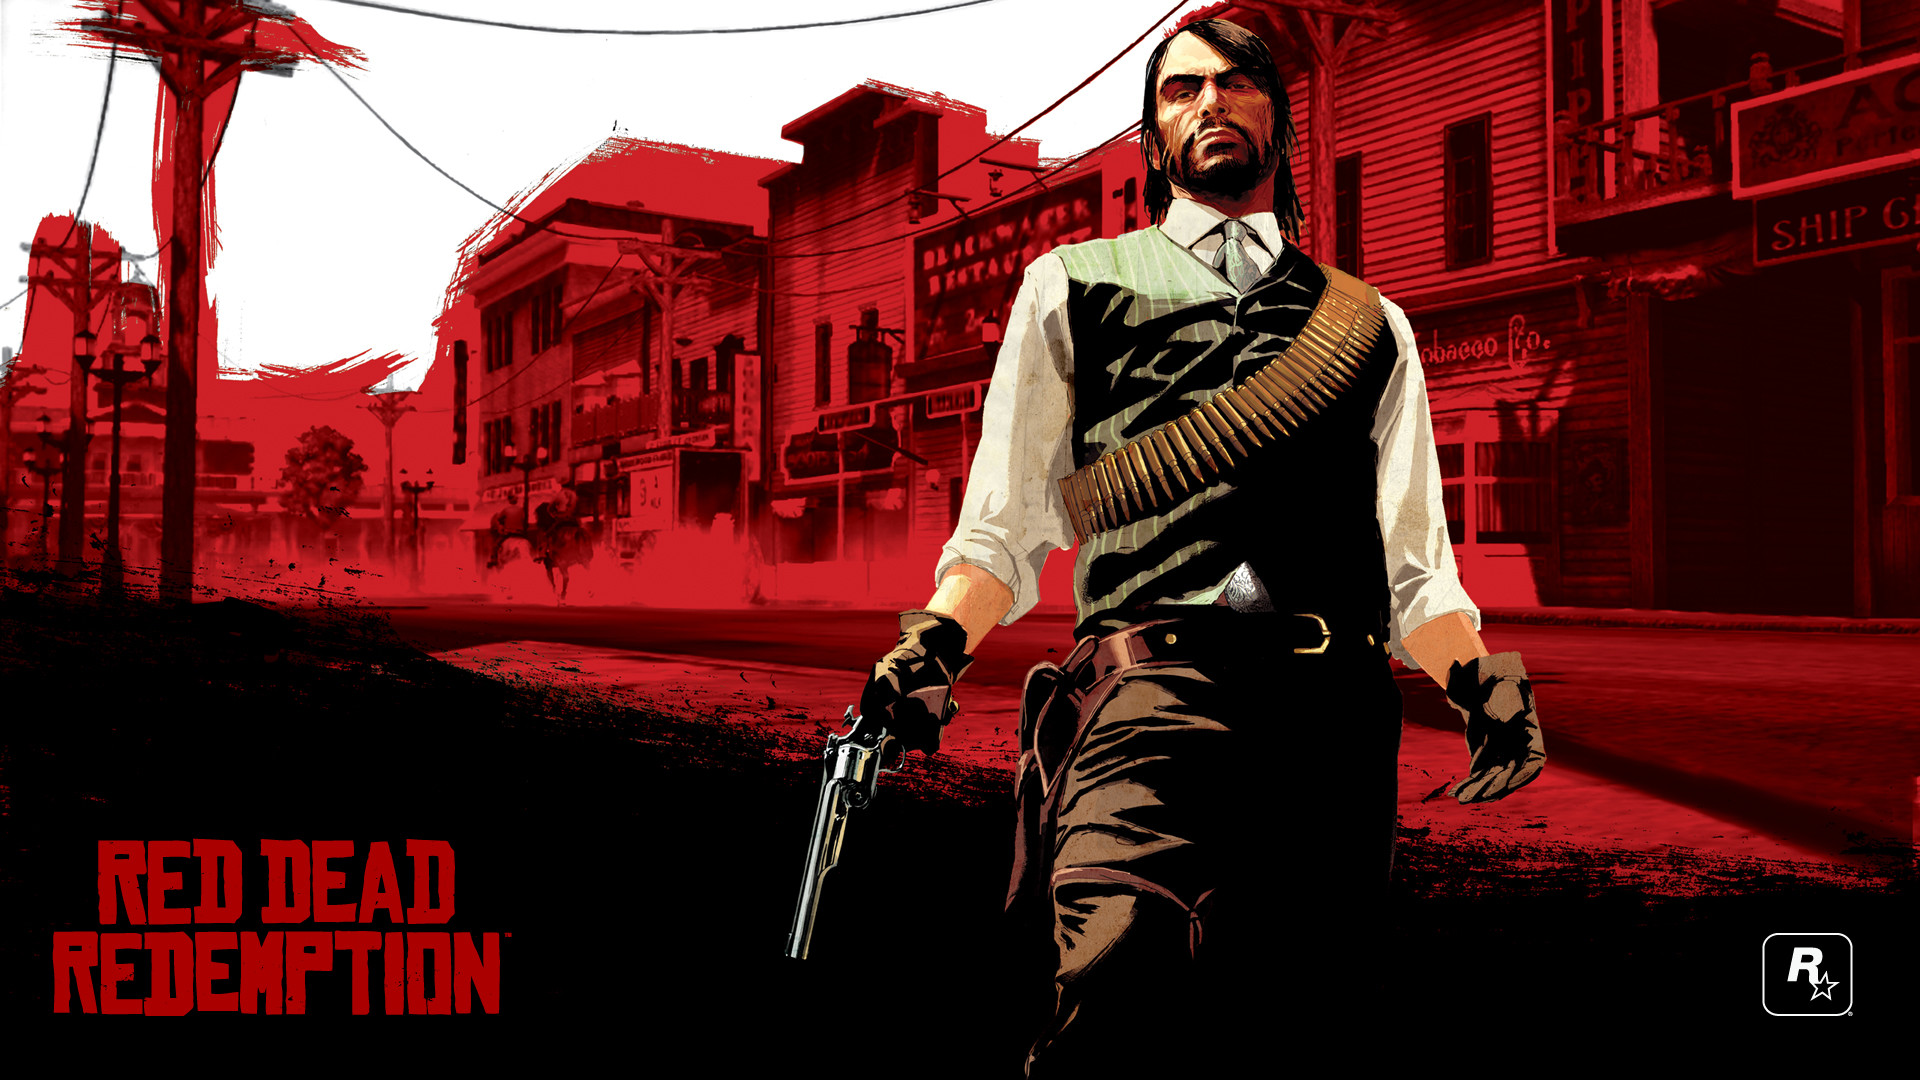 Res: 1920x1080, ... Huge Red Dead Redemption Desktop Background Wallpapers, GsFDcY.com ...